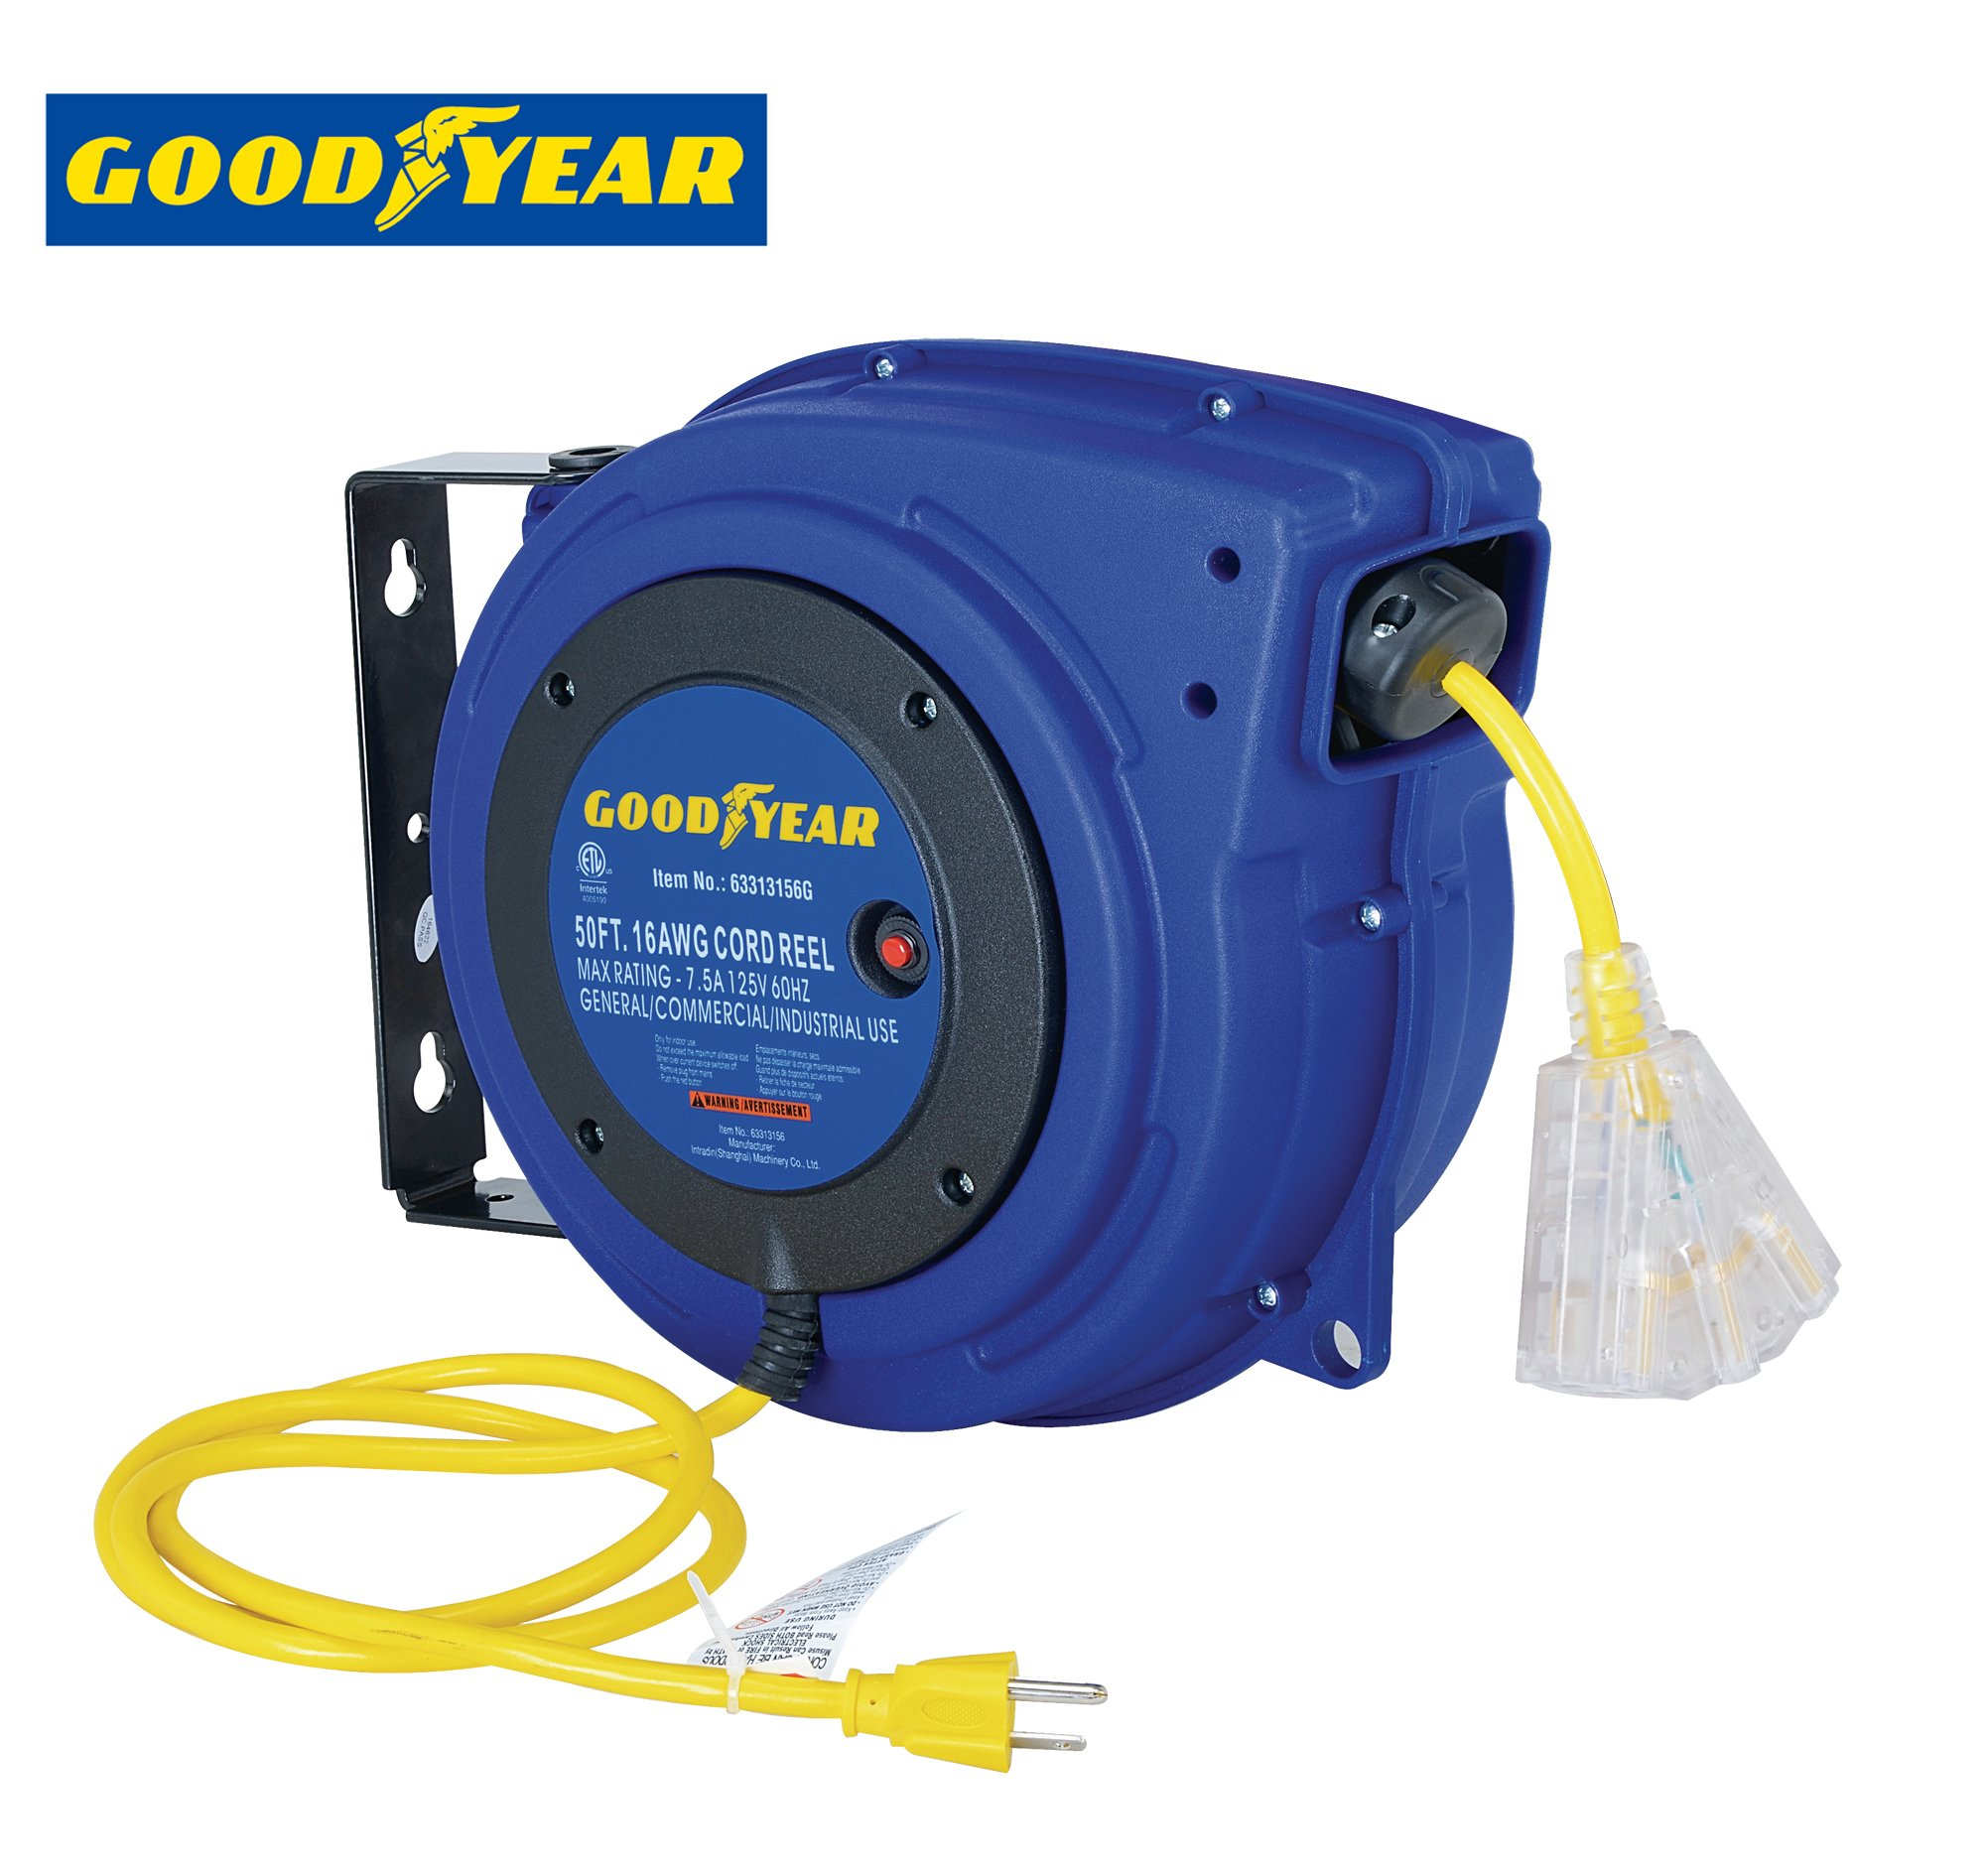 GOODYEAR Heavy Duty Extension Cord Reel , 50 ft., 3C SJTOW, Triple Tap with LED Lighted Connector (16 AWG)